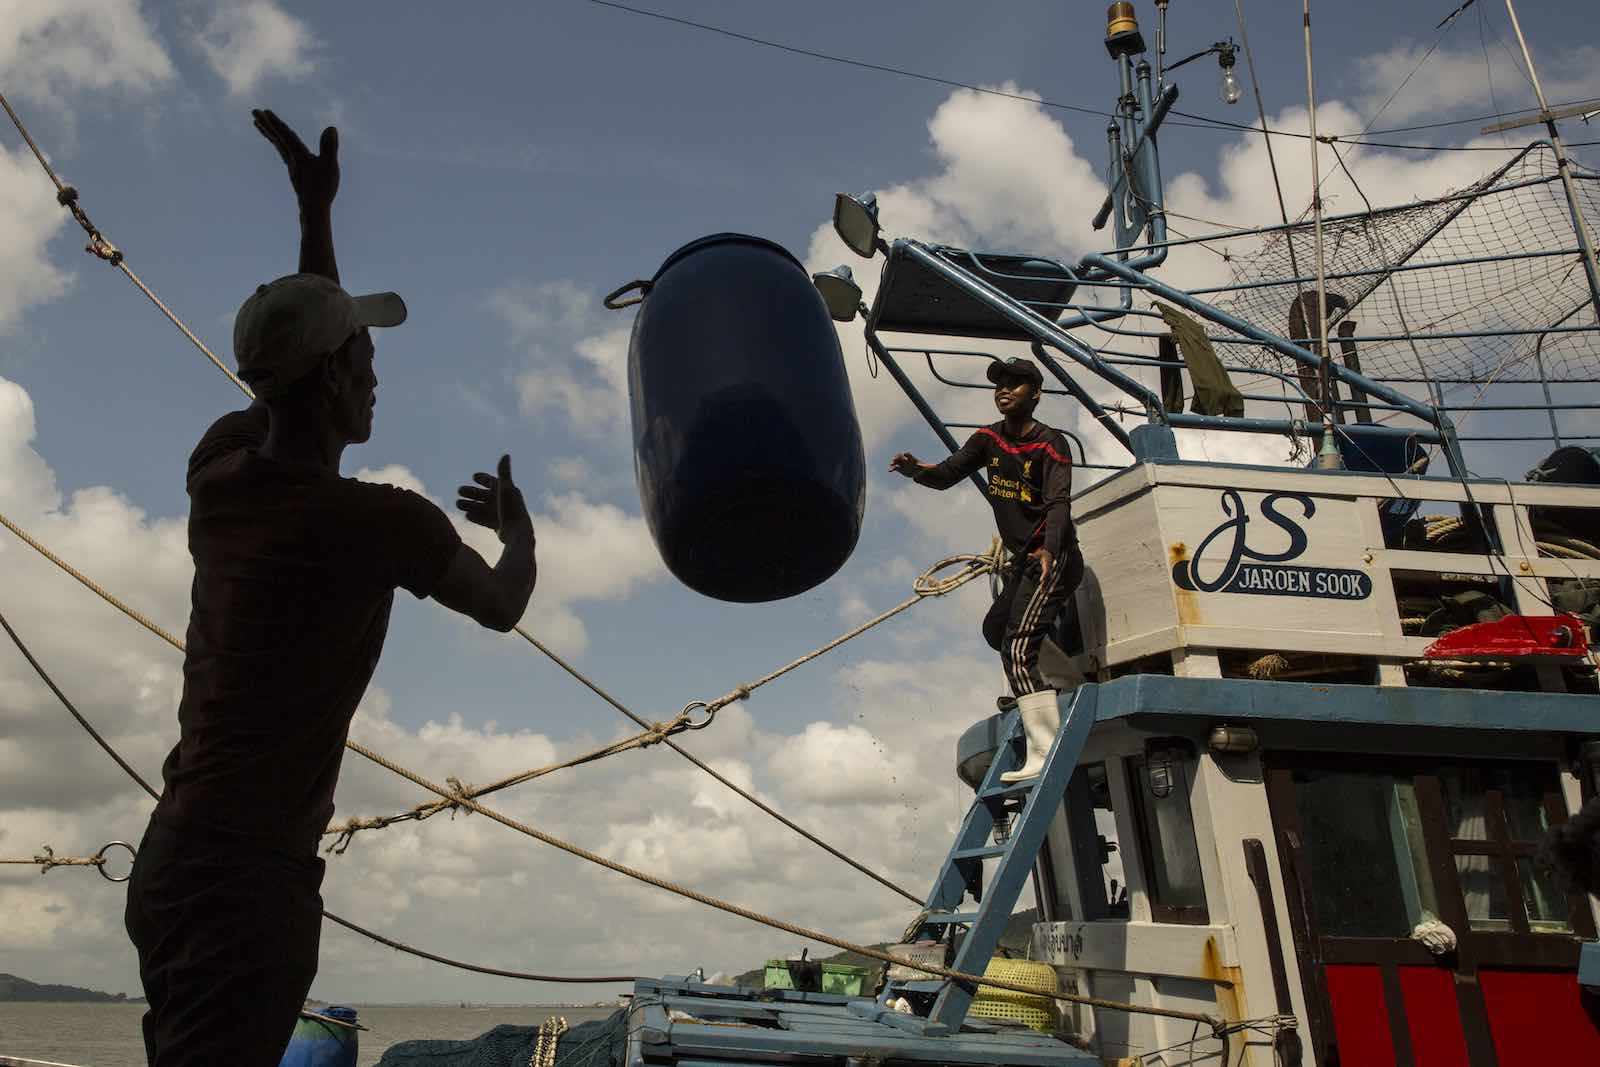 Boat workers in Songkhla, Thailand, February 2016. Thailand's multi-billion dollar seafood industry was found in 2015 to involve labour abuses, including slavery (Paula Bronstein/ Getty Images)